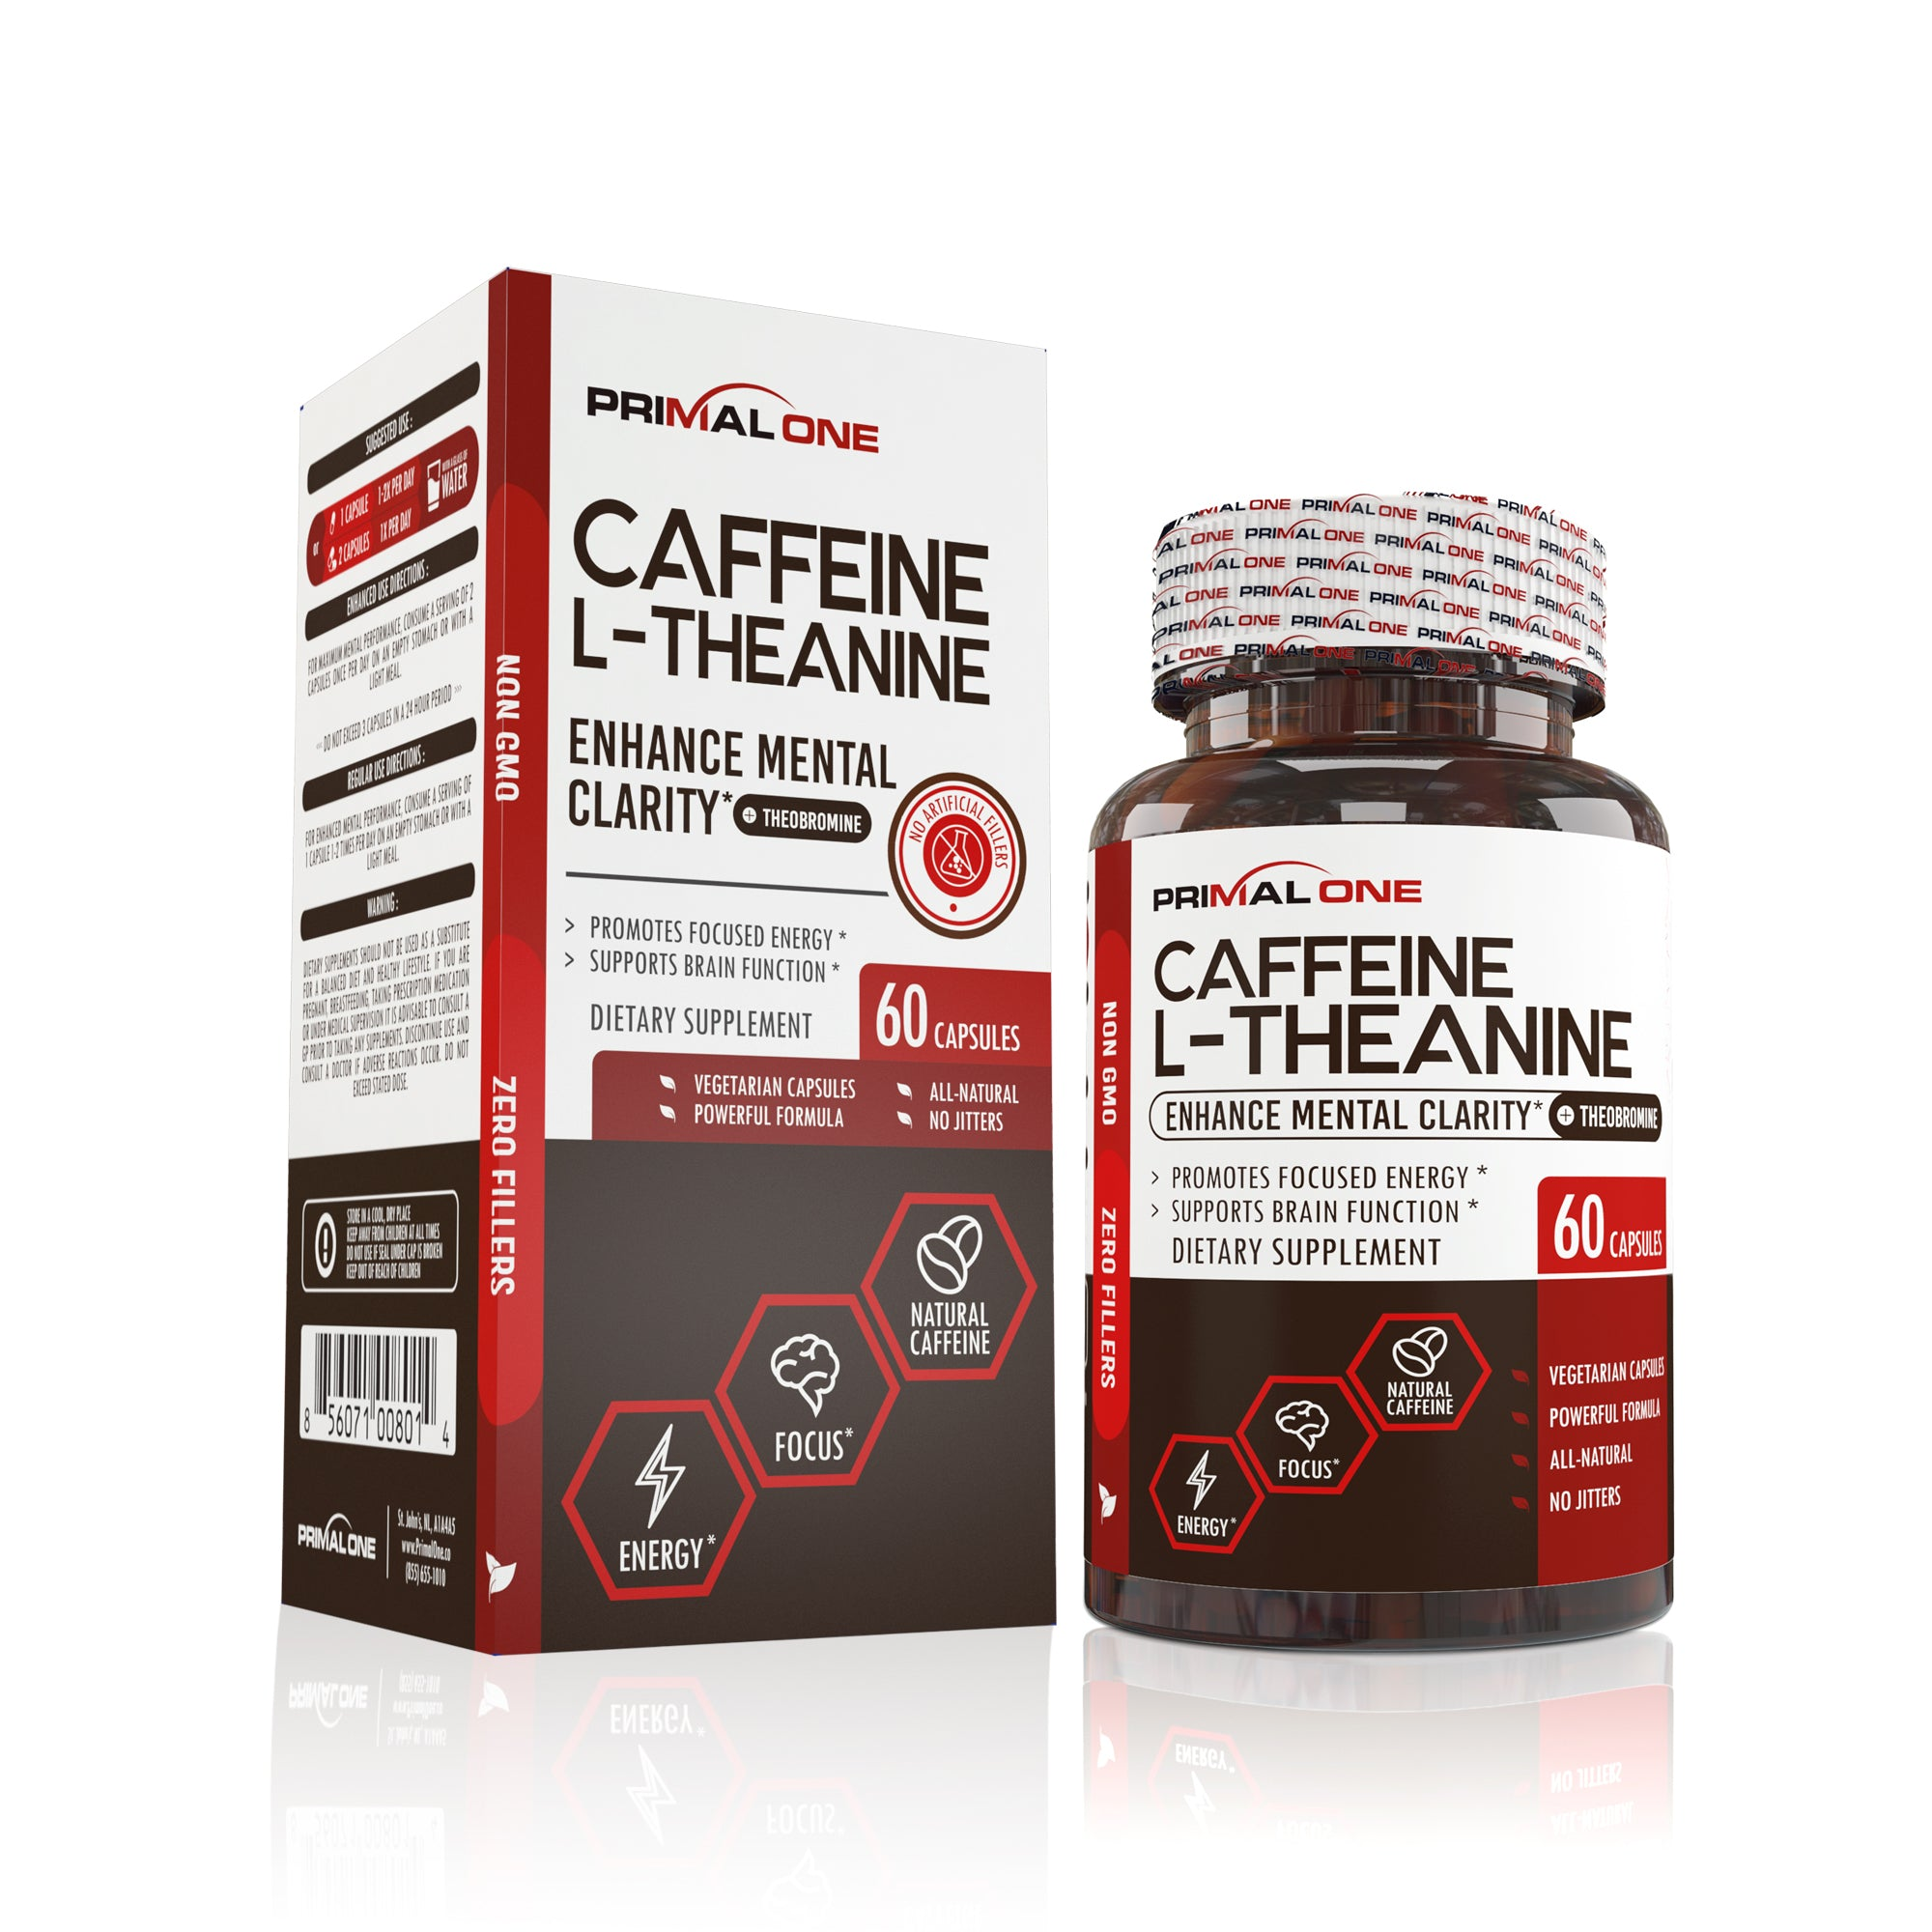 --CAFFEINE L-THEANINE--